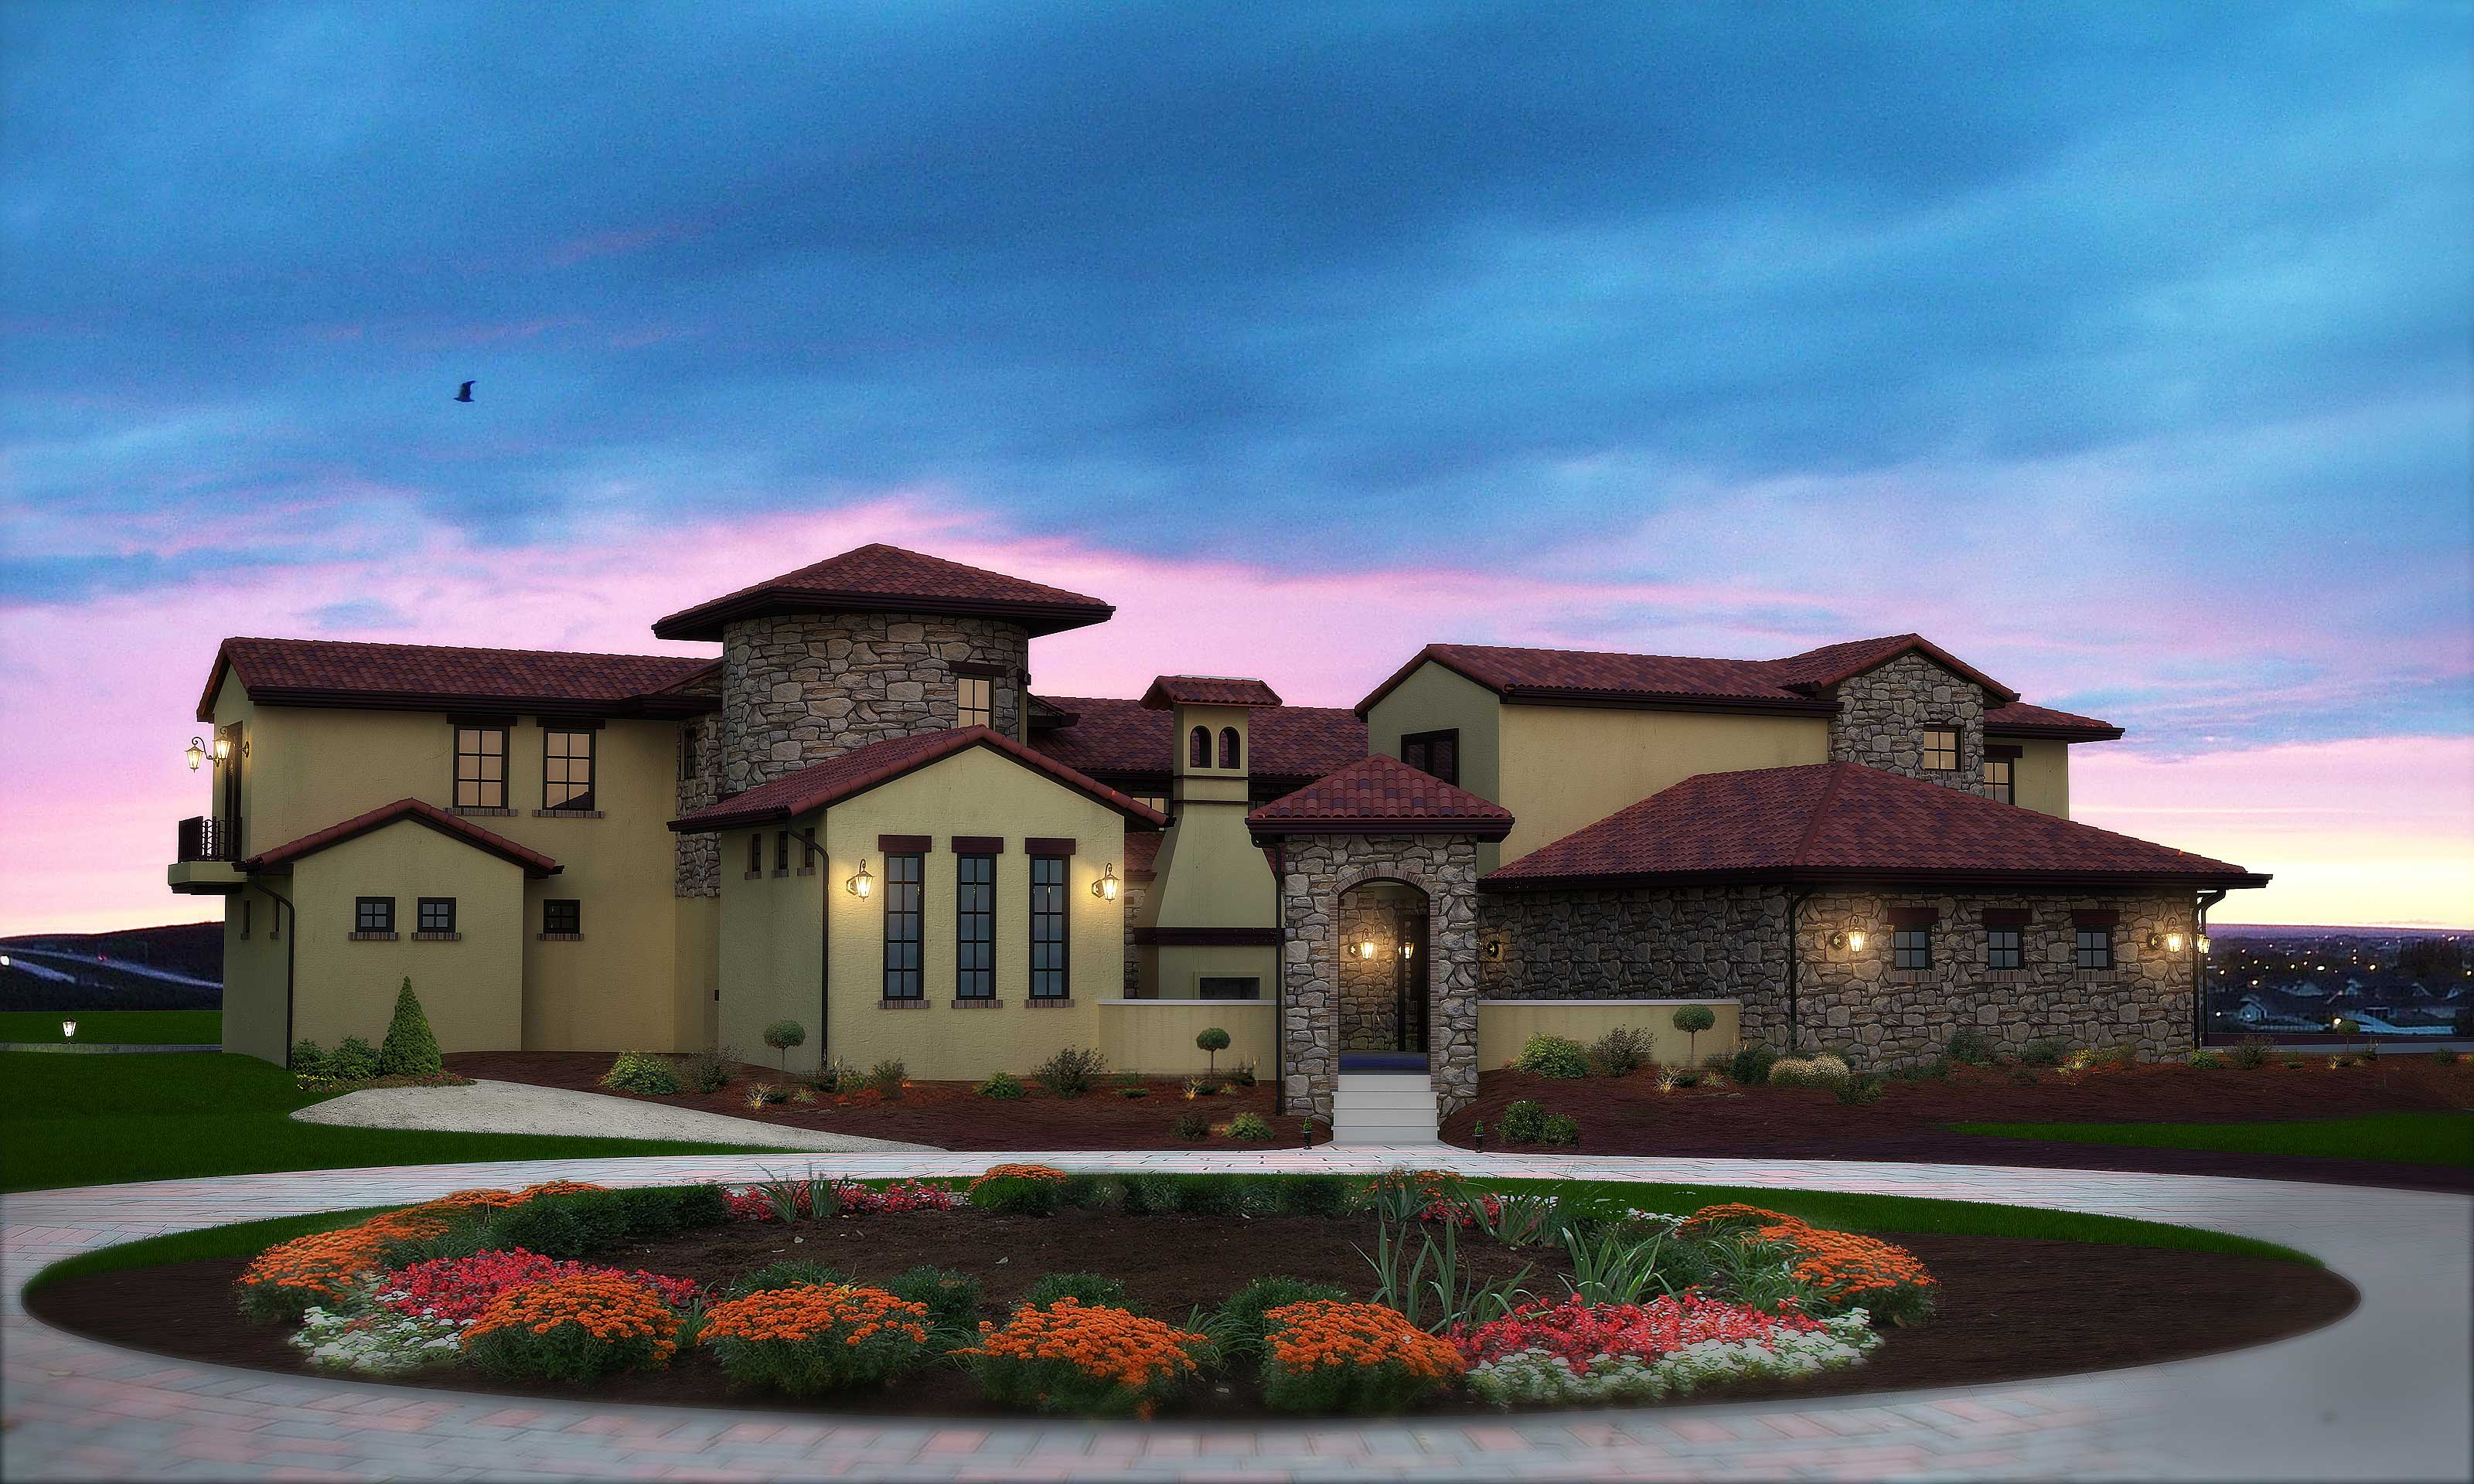 Mediterranean Home Plan - 6 Bedrms, 5.5 Baths - 7521 Sq Ft ...